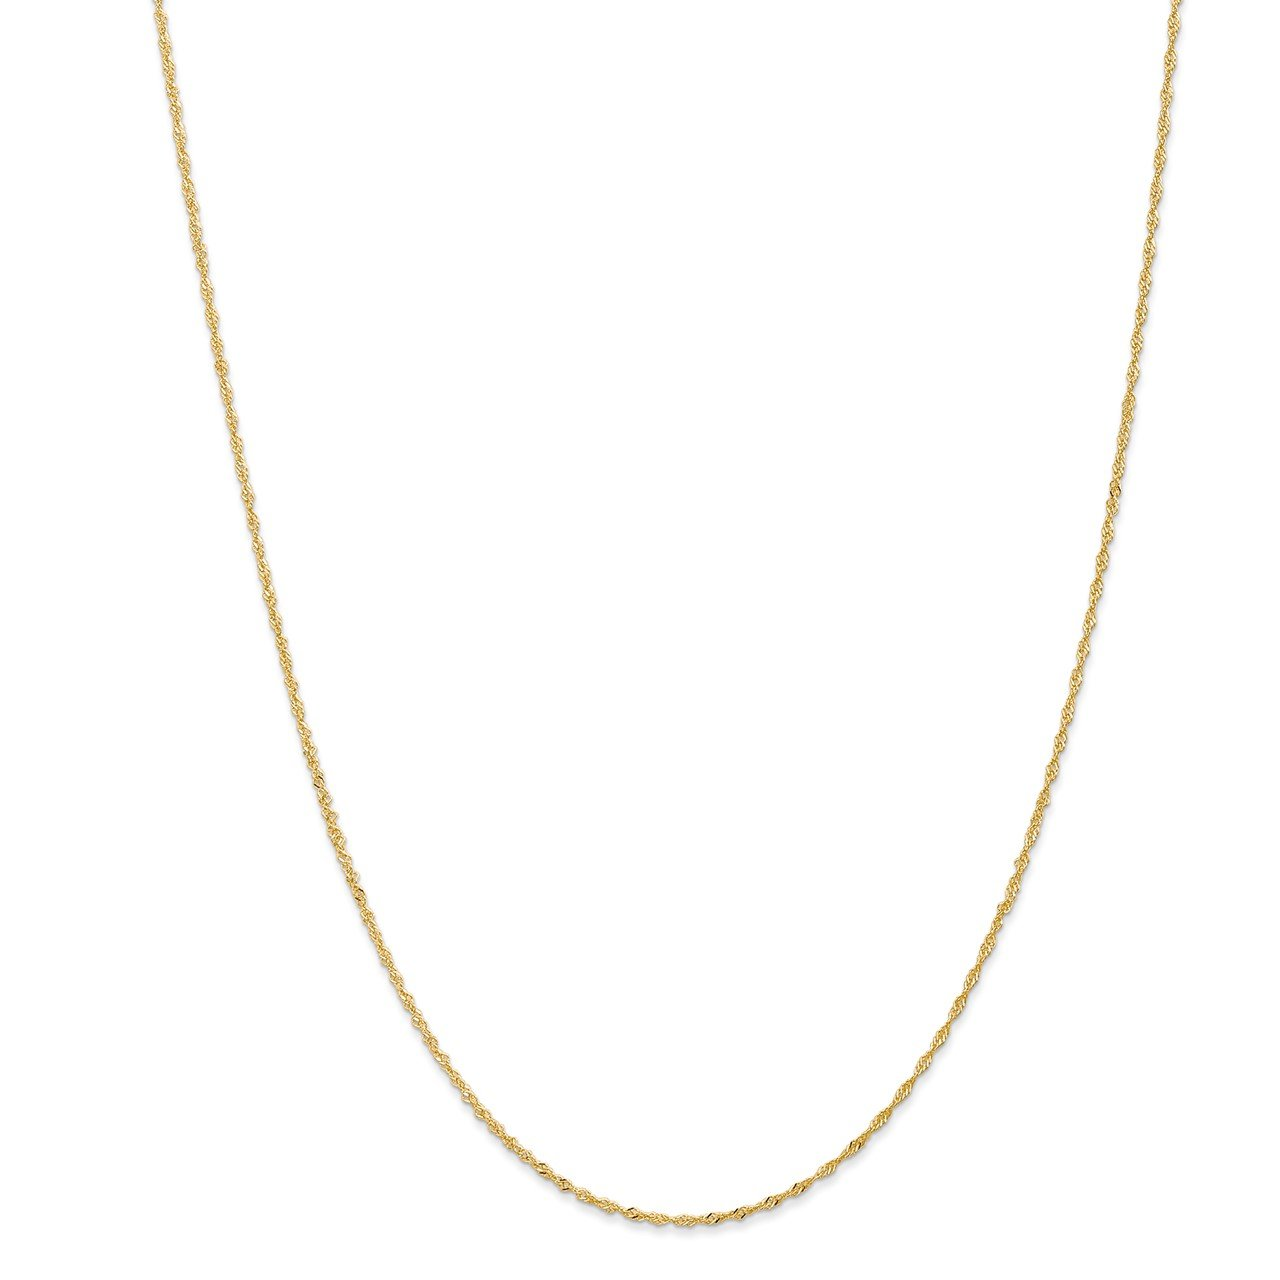 Leslie's 14K 1mm Singapore with Lobster Clasp Chain